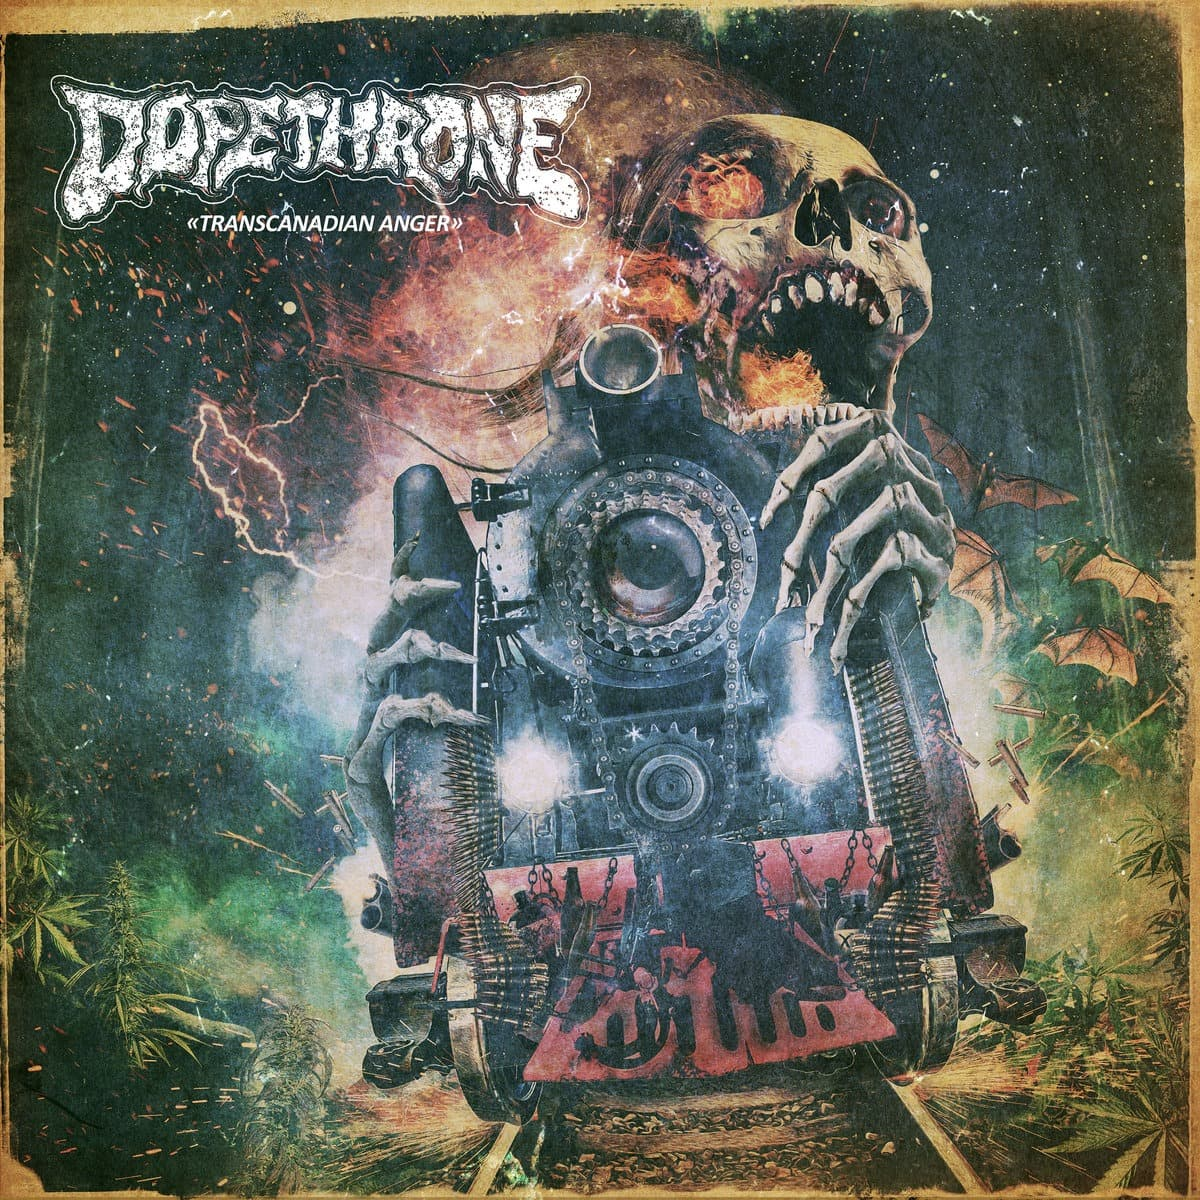 DOPETHRONE (CAN) – Transcanadian anger, 2018